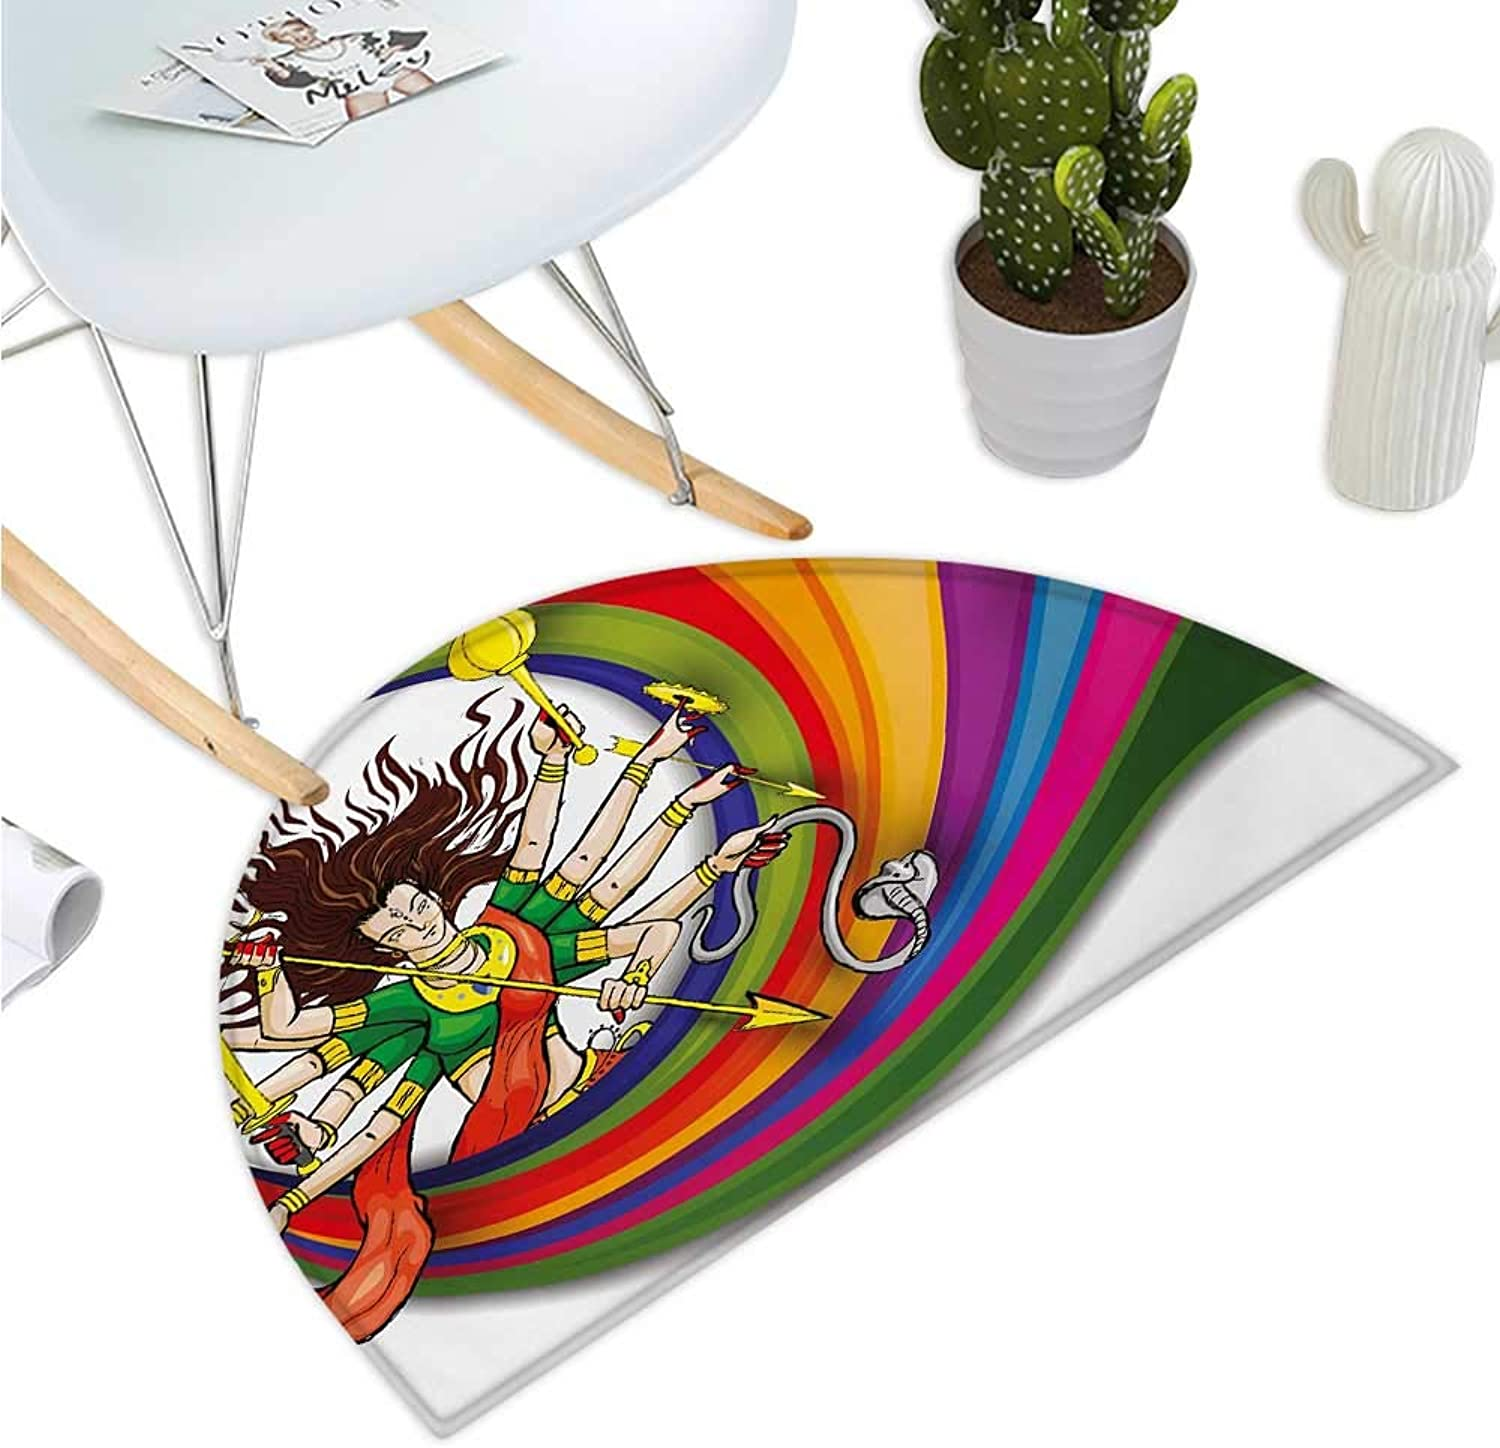 Ethnic Semicircle Doormat Figure Vibrant Swirled Rainbow Circle Snake and Auspicious Cultural Illustration Halfmoon doormats H 43.3  xD 64.9  Multicolor